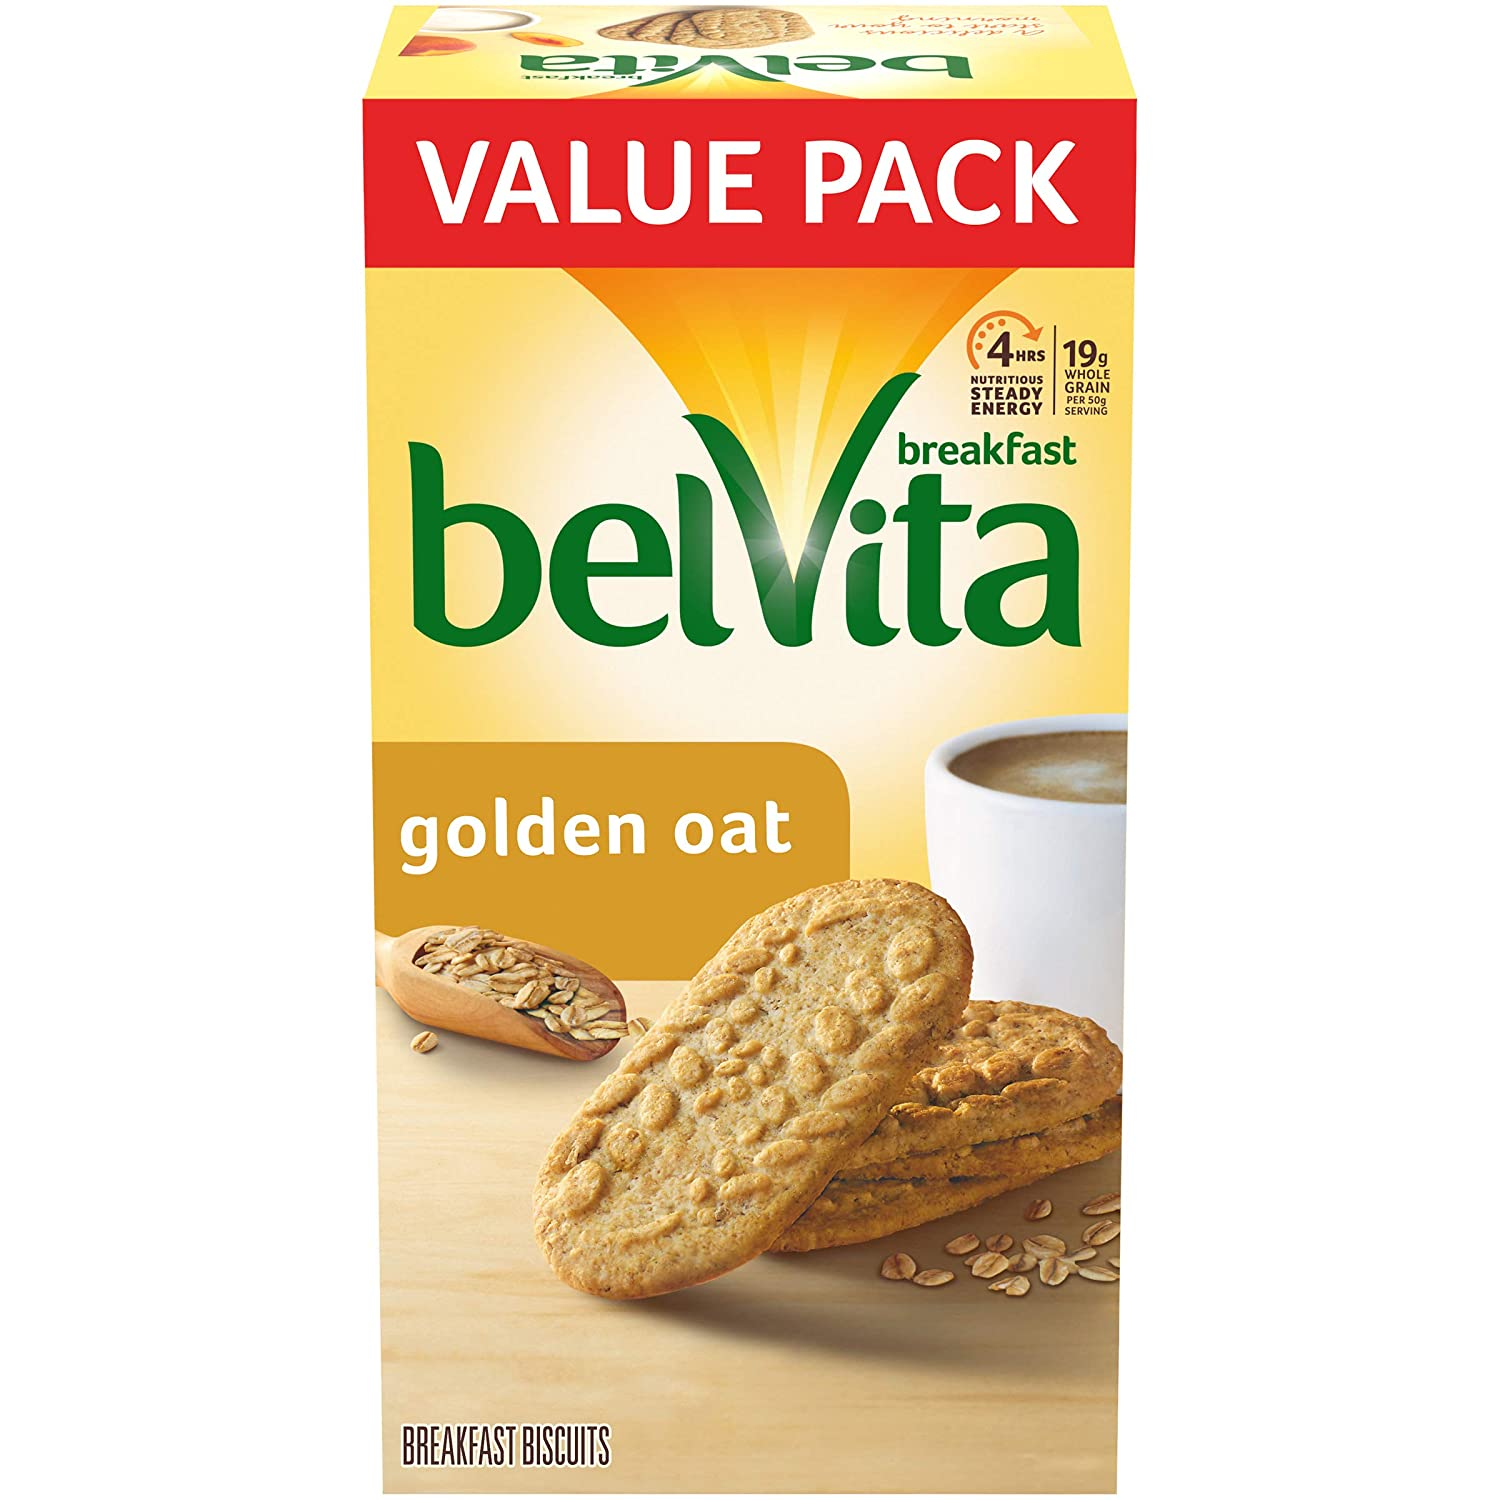 belVita Golden Oat Breakfast Biscuits, 12 Packs